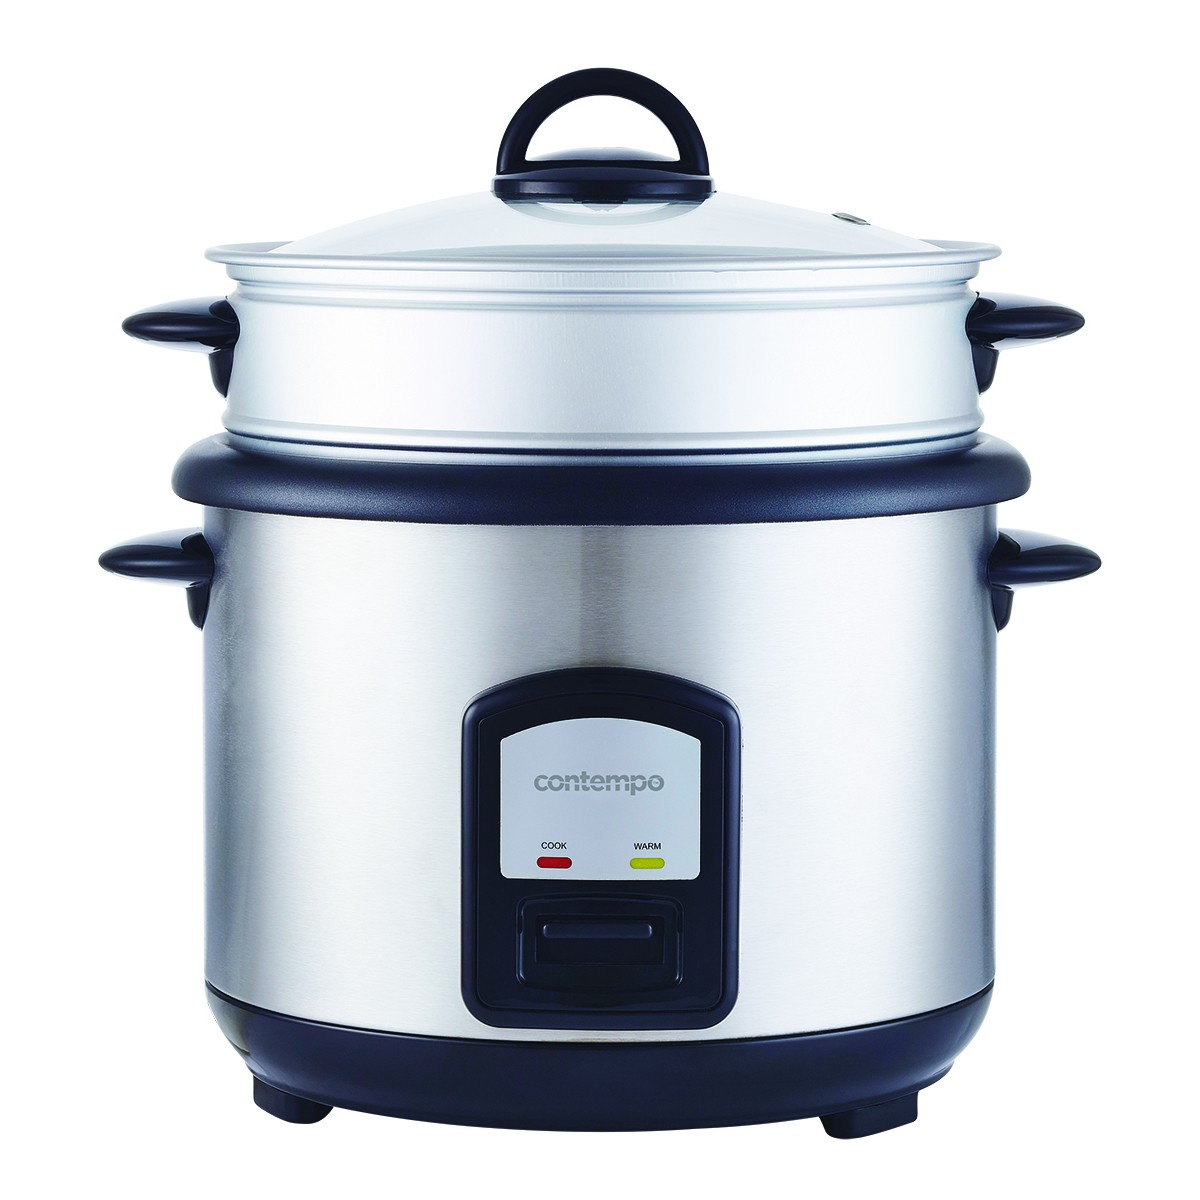 Big W Pressure Cooker Contempo 10 Cup Rice Cooker With Steamer